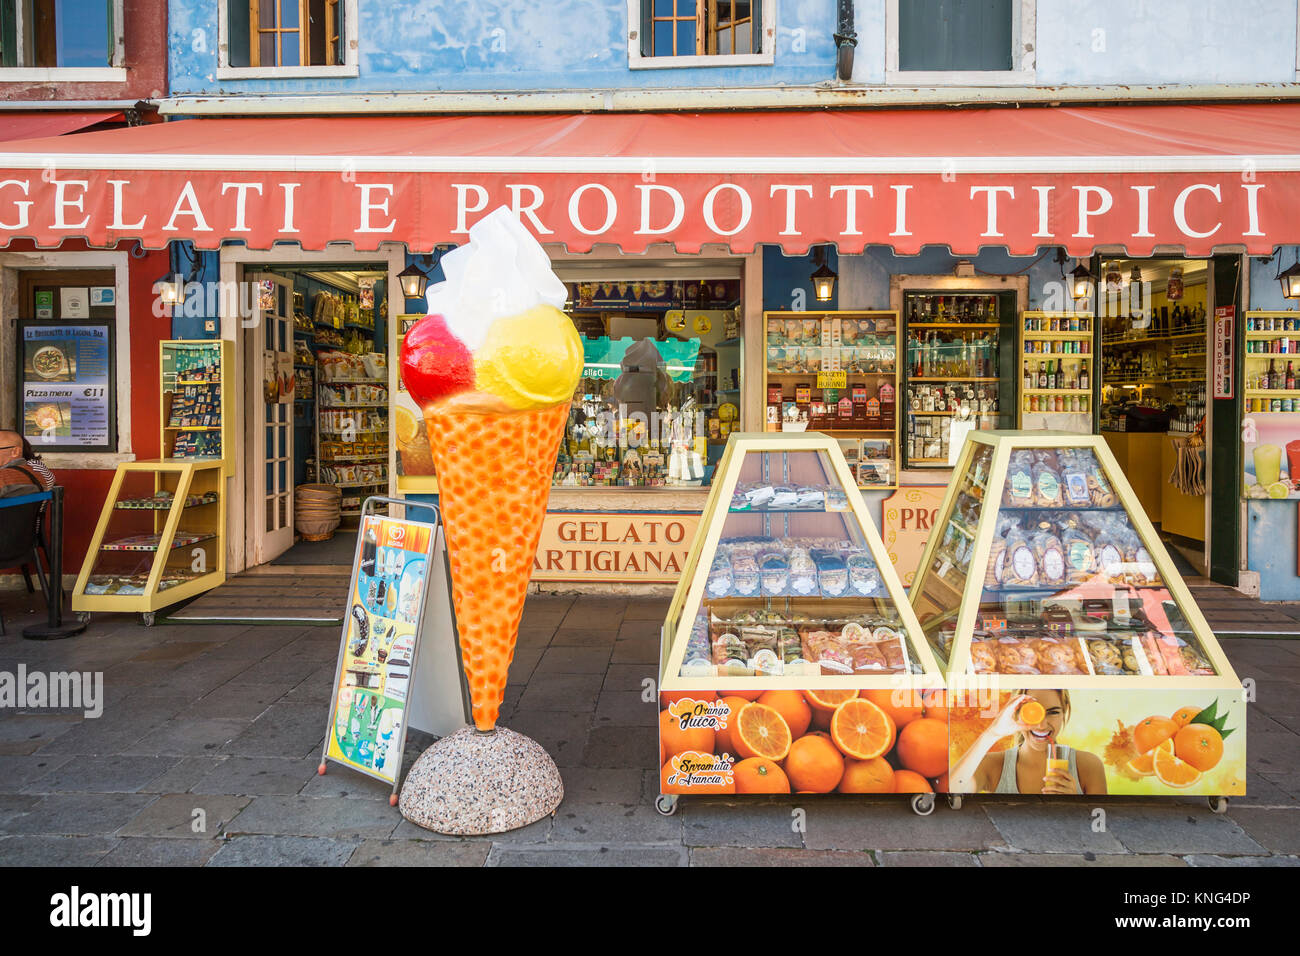 Une boutique de Gelati dans le monde vlllage de Burano, Venise, Italie, Europe. Photo Stock